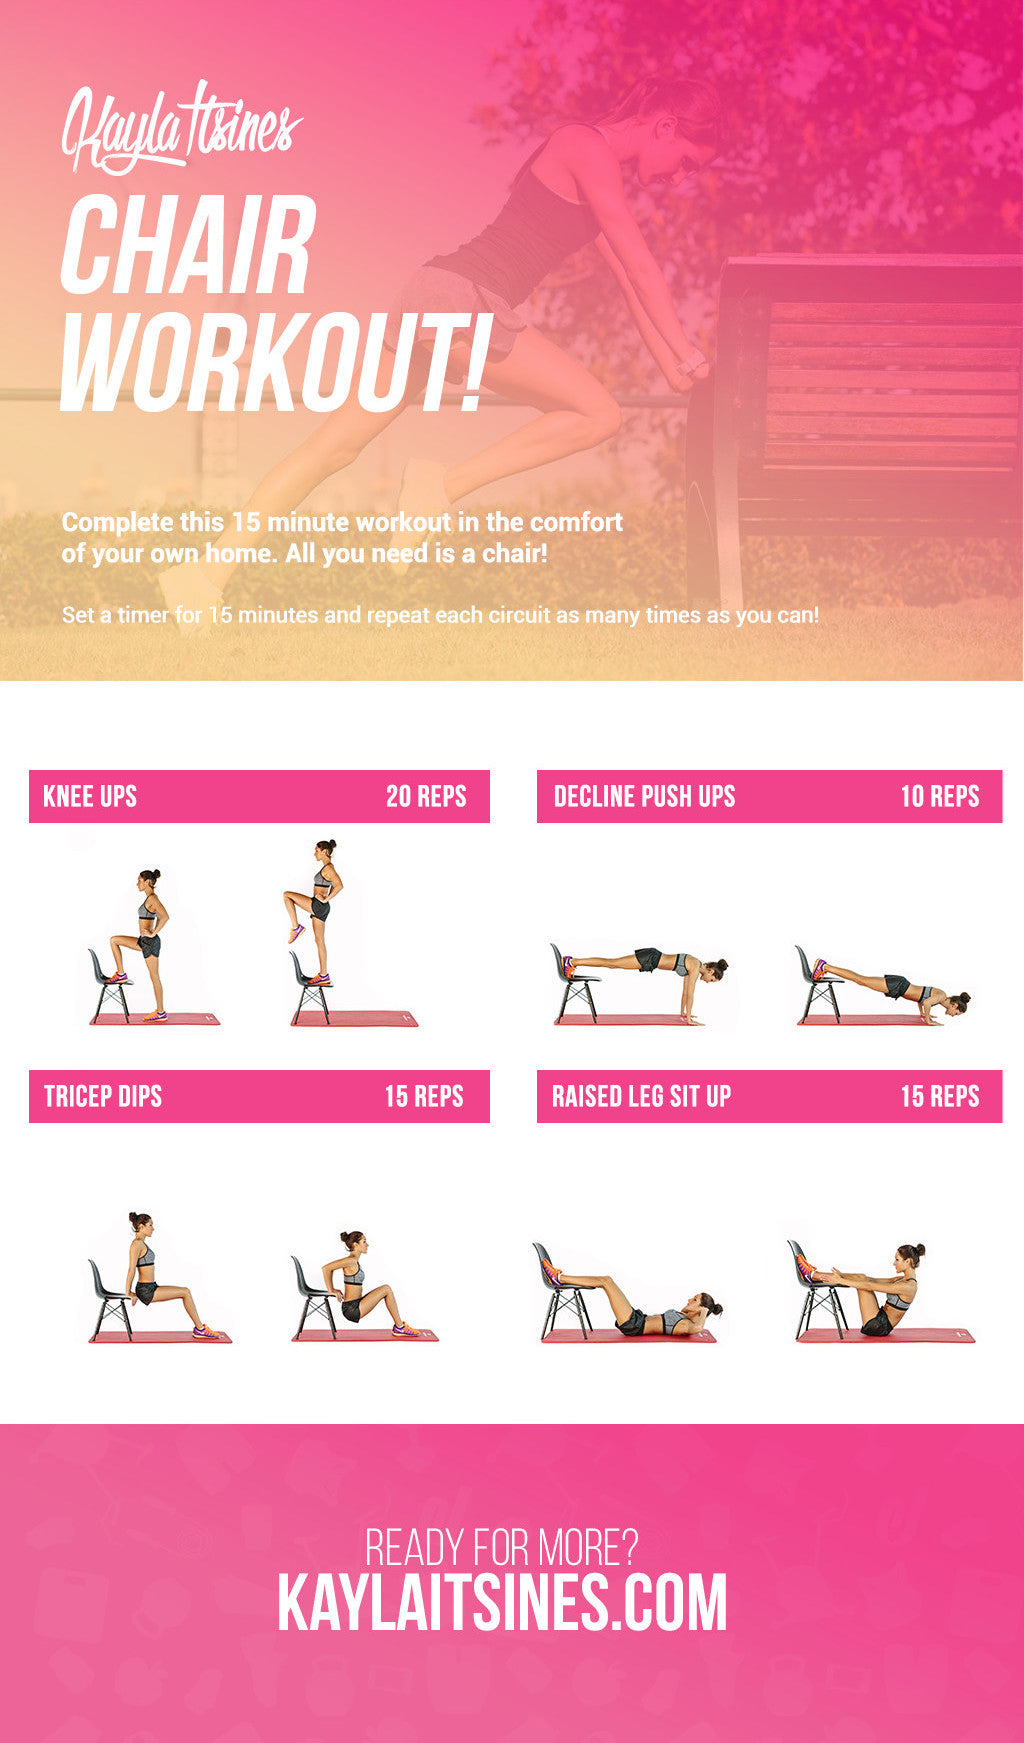 Chair Workout - Kayla Itsines